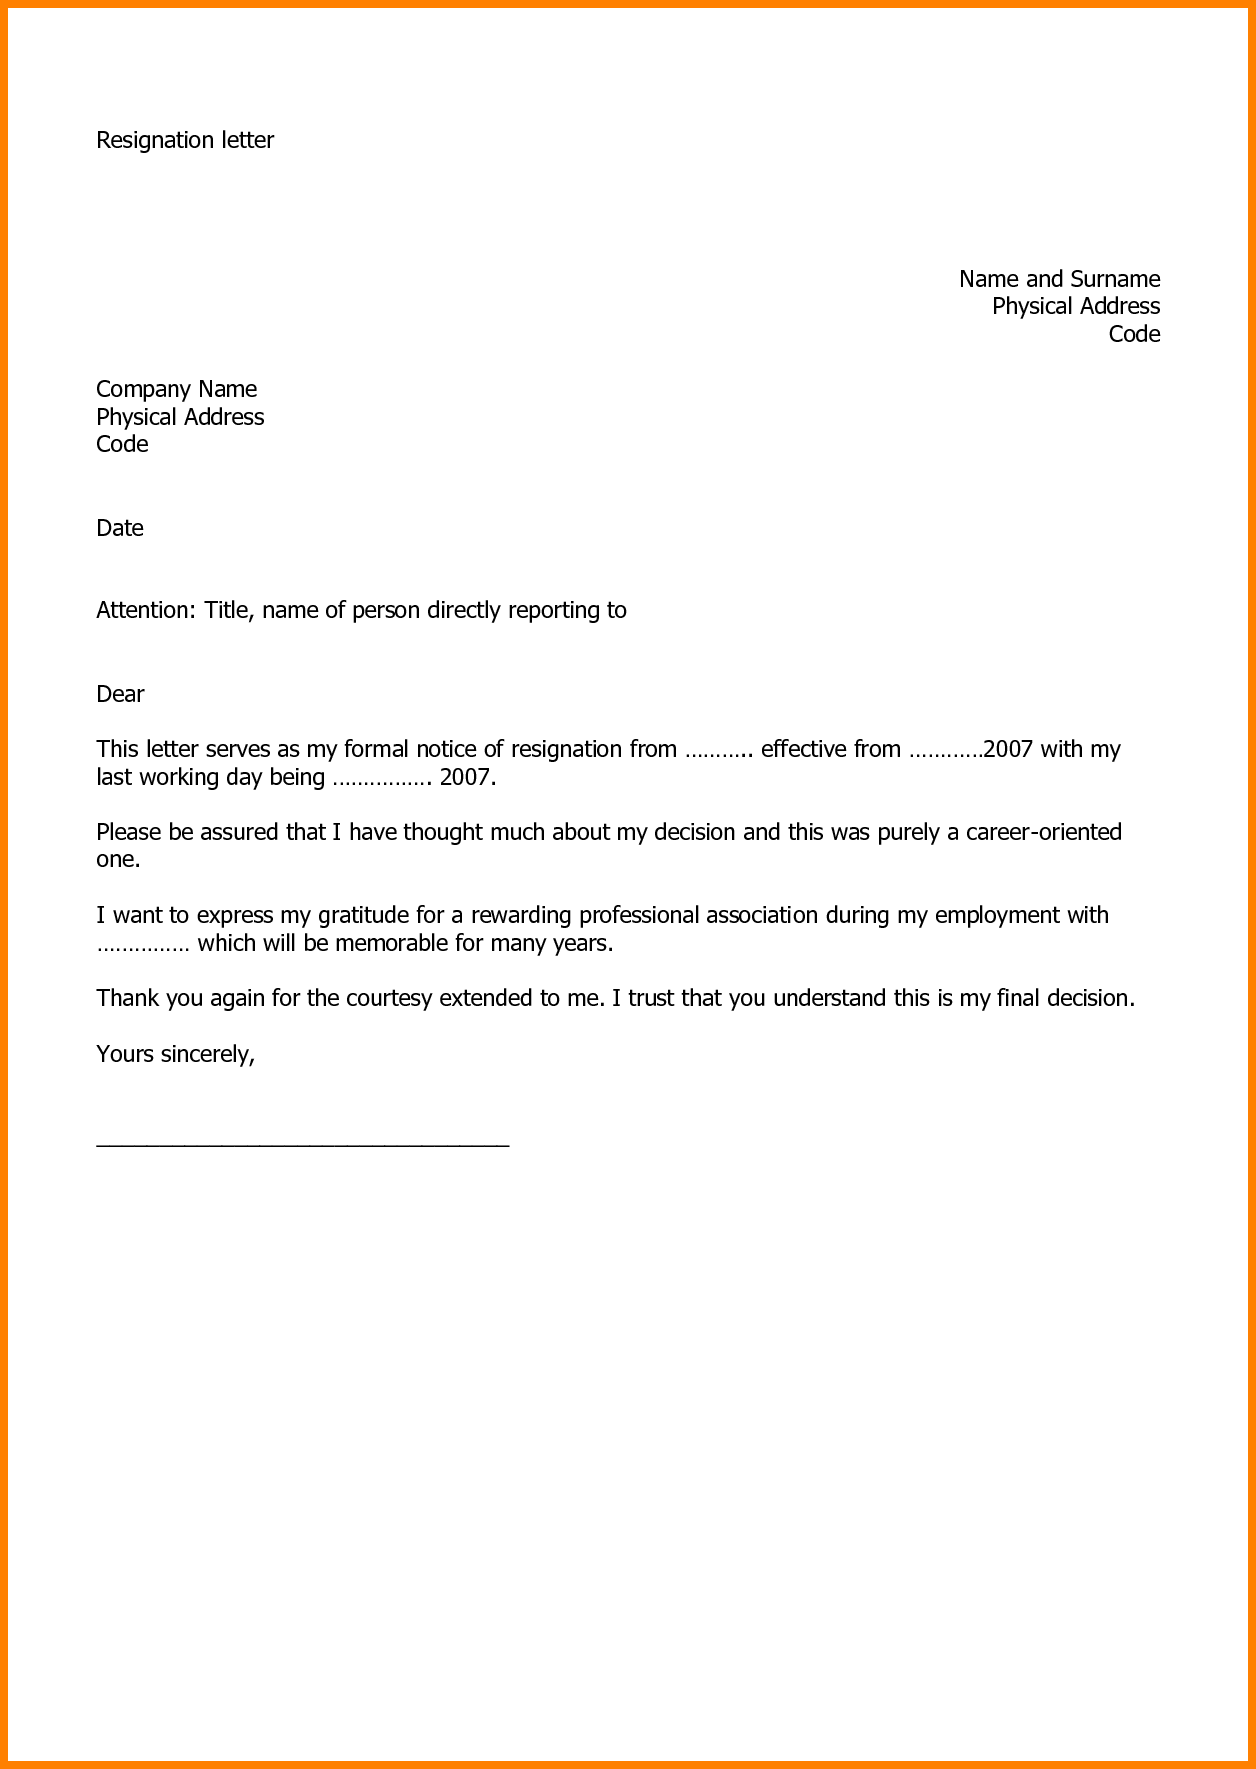 Charming Letter Format For Job Resignation Resignation Letter Example.